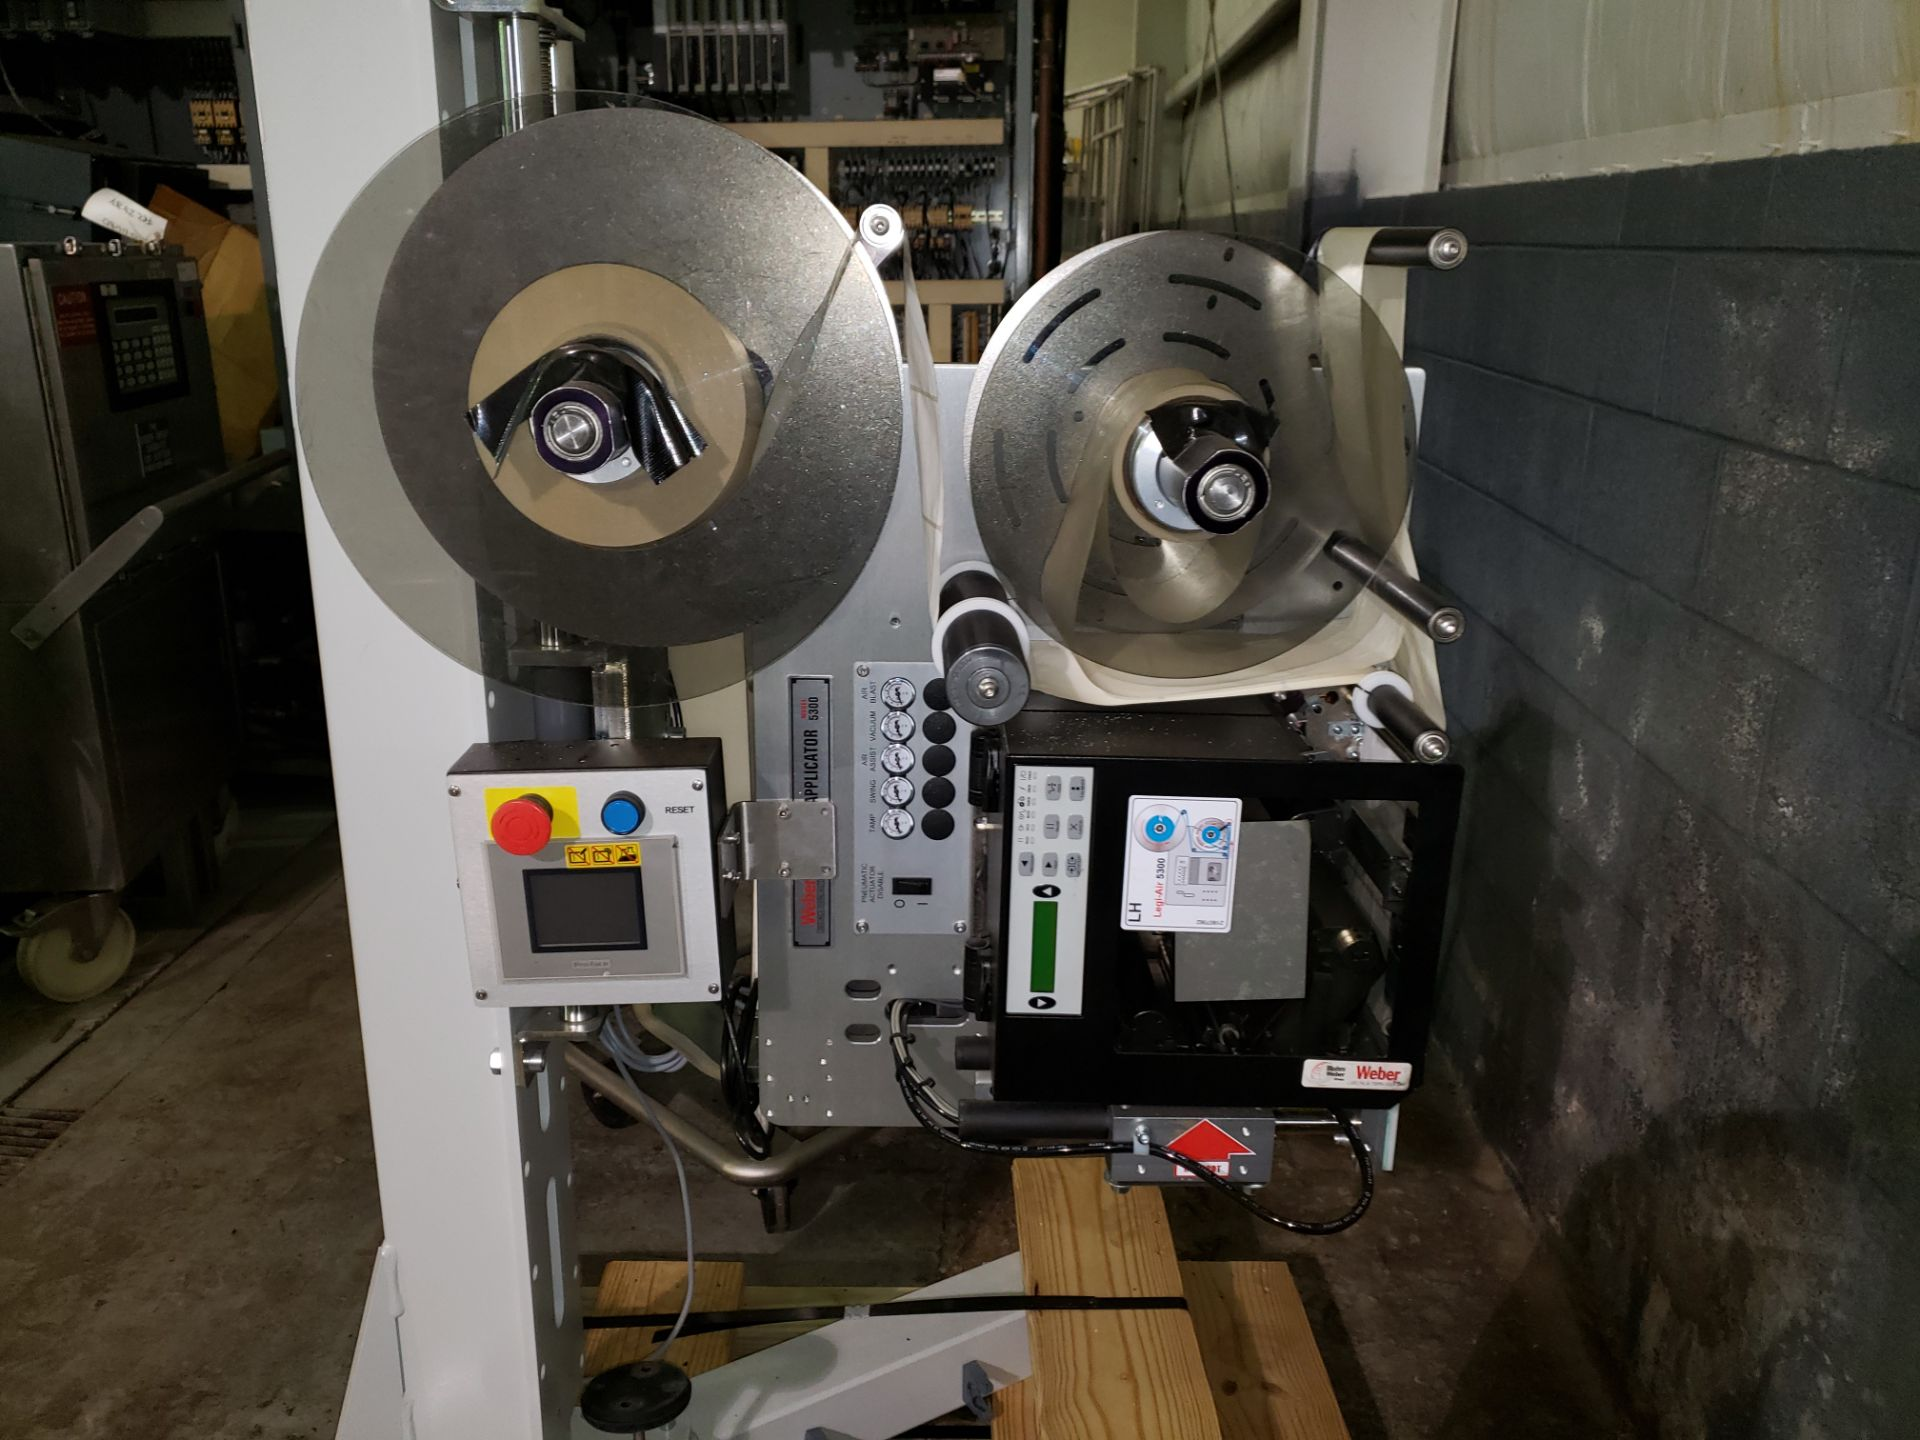 Lot 17 - Weber print and apply labeler, model 5300, type LEGI-Air with Weber printer on stand, serial#